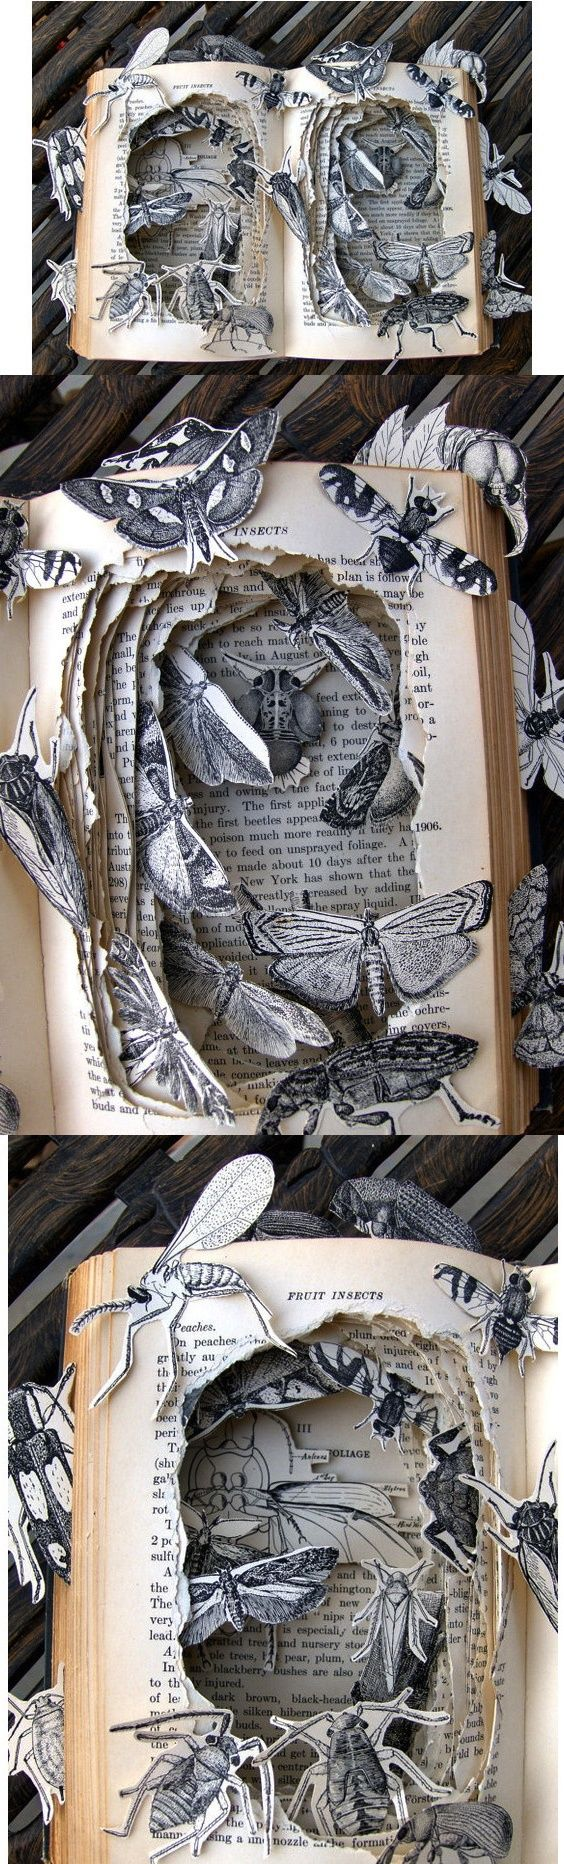 Kelly Campbell, Mayberry's Insects, art, sculpture, paper craft, book art, book sculpture